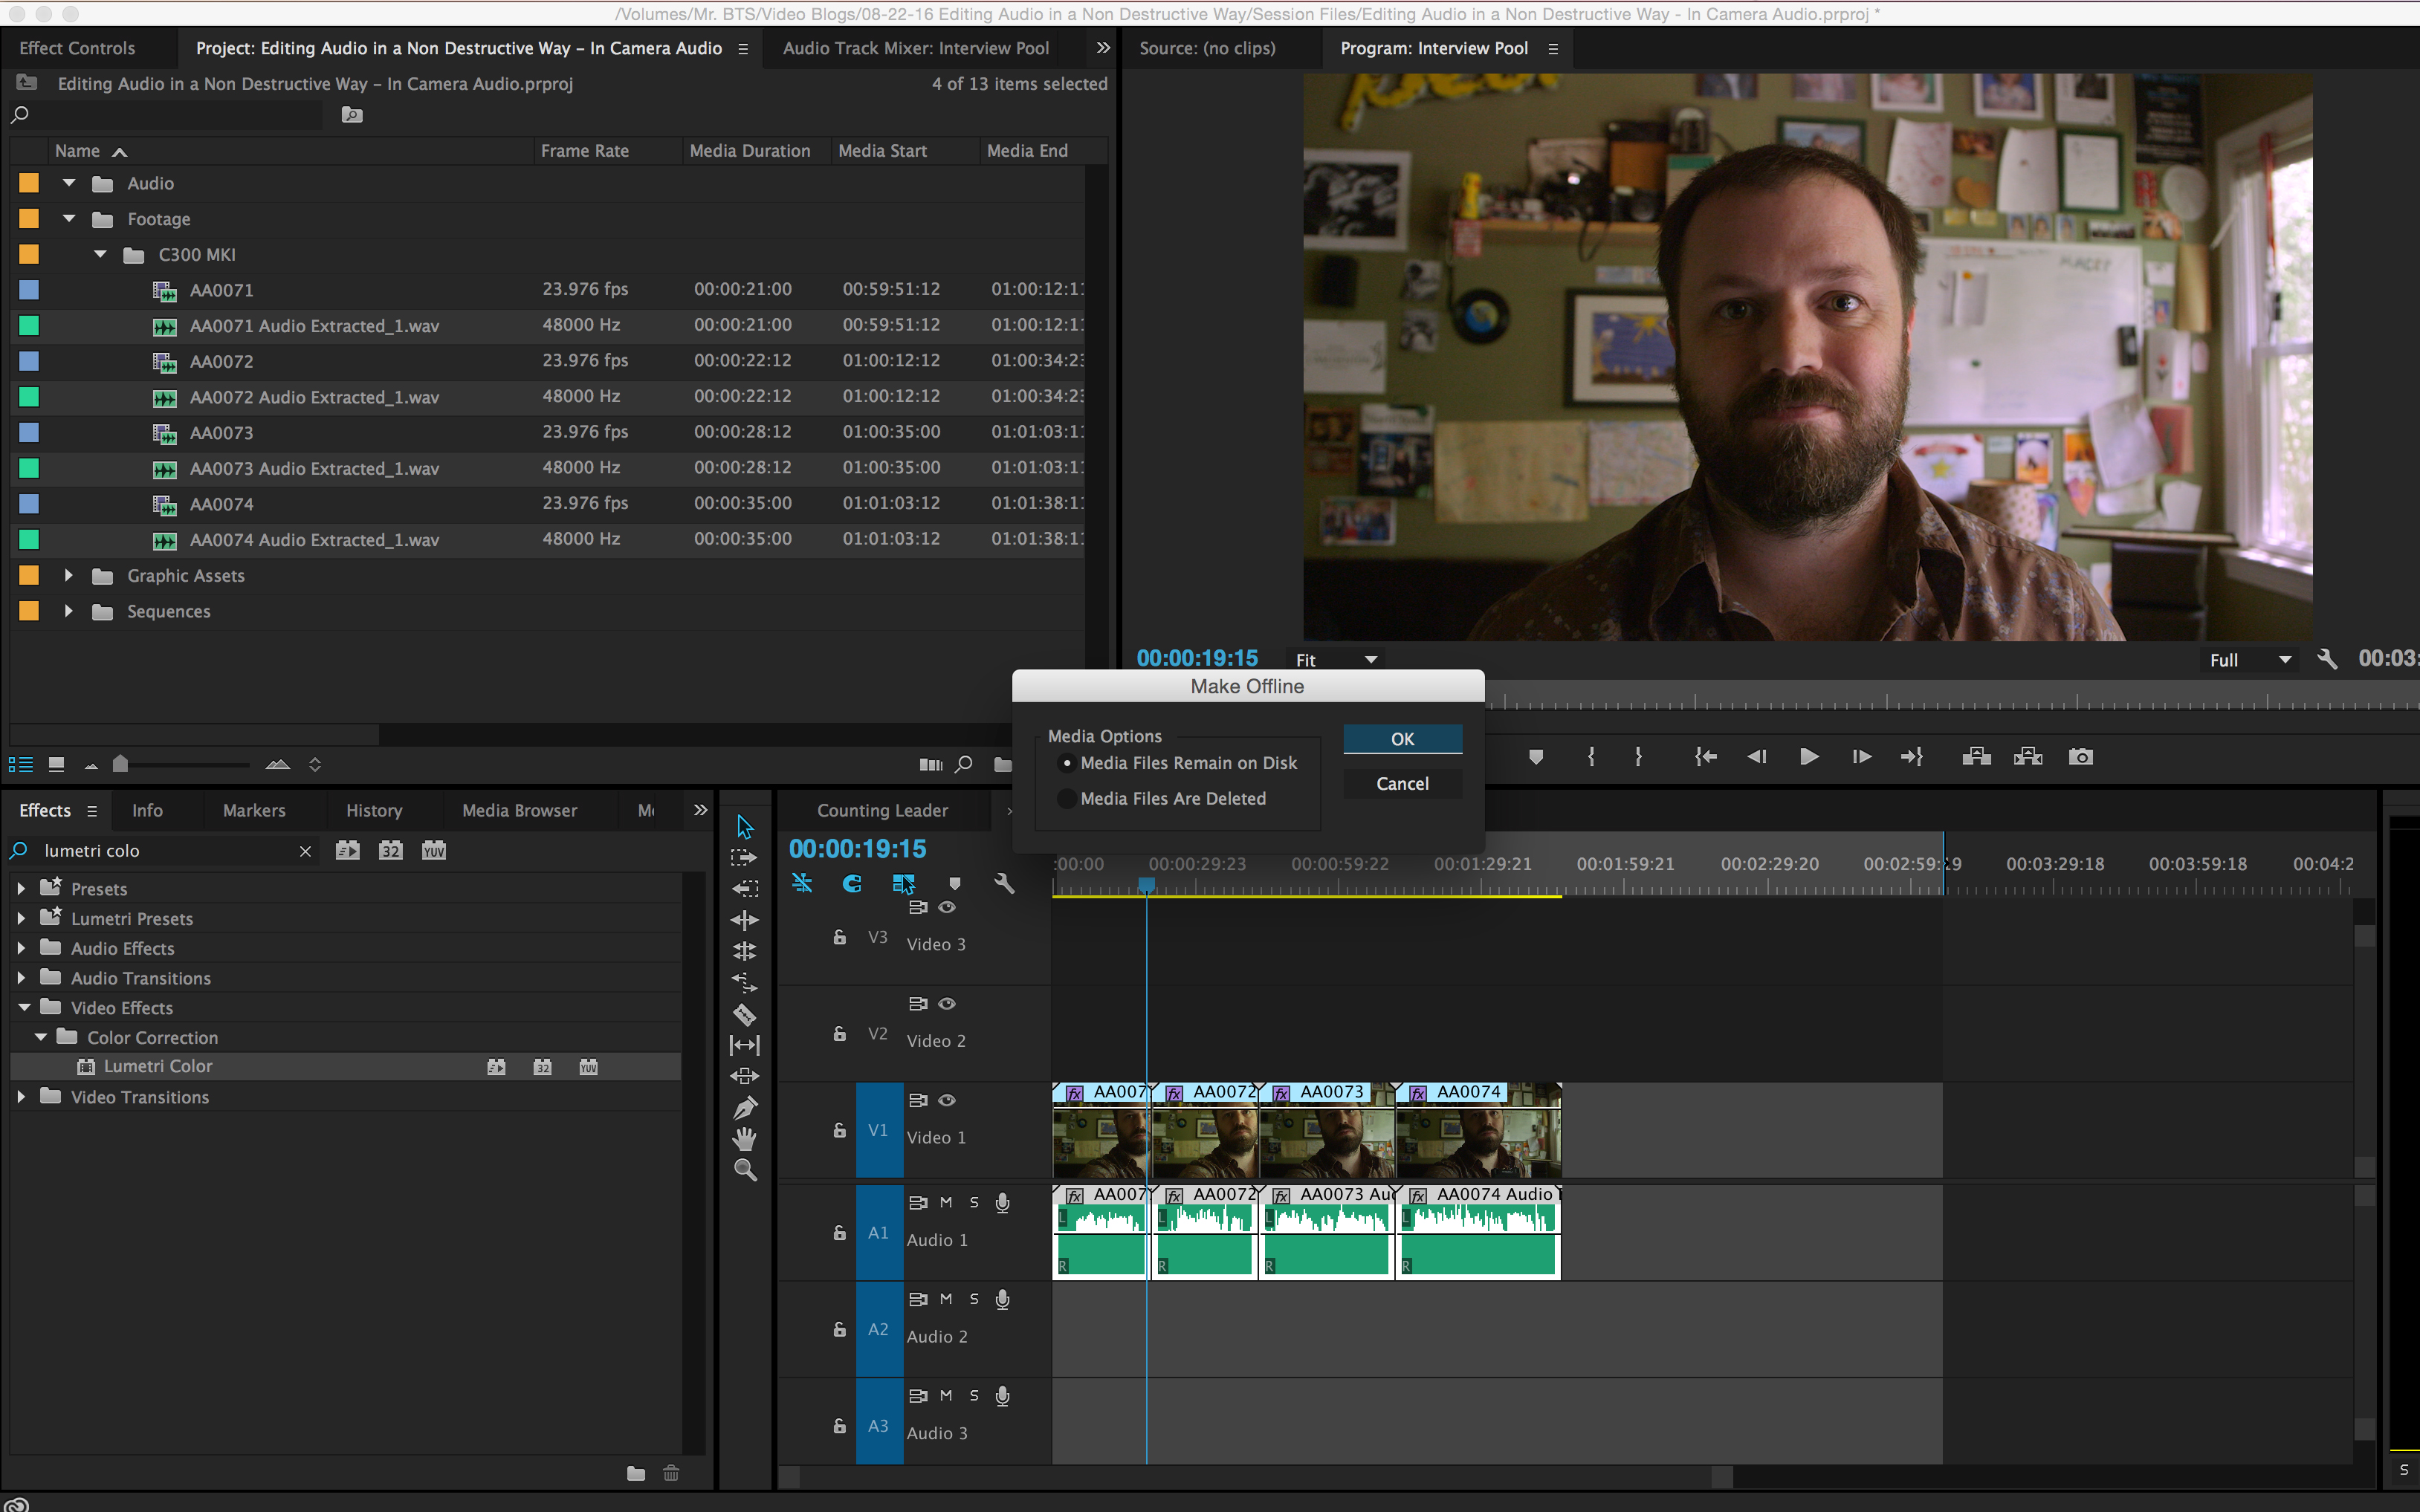 How to Simultaneously Edit Multiple Internal Camera Audio Files: Media Files Remain on Disk Adobe Premiere CC